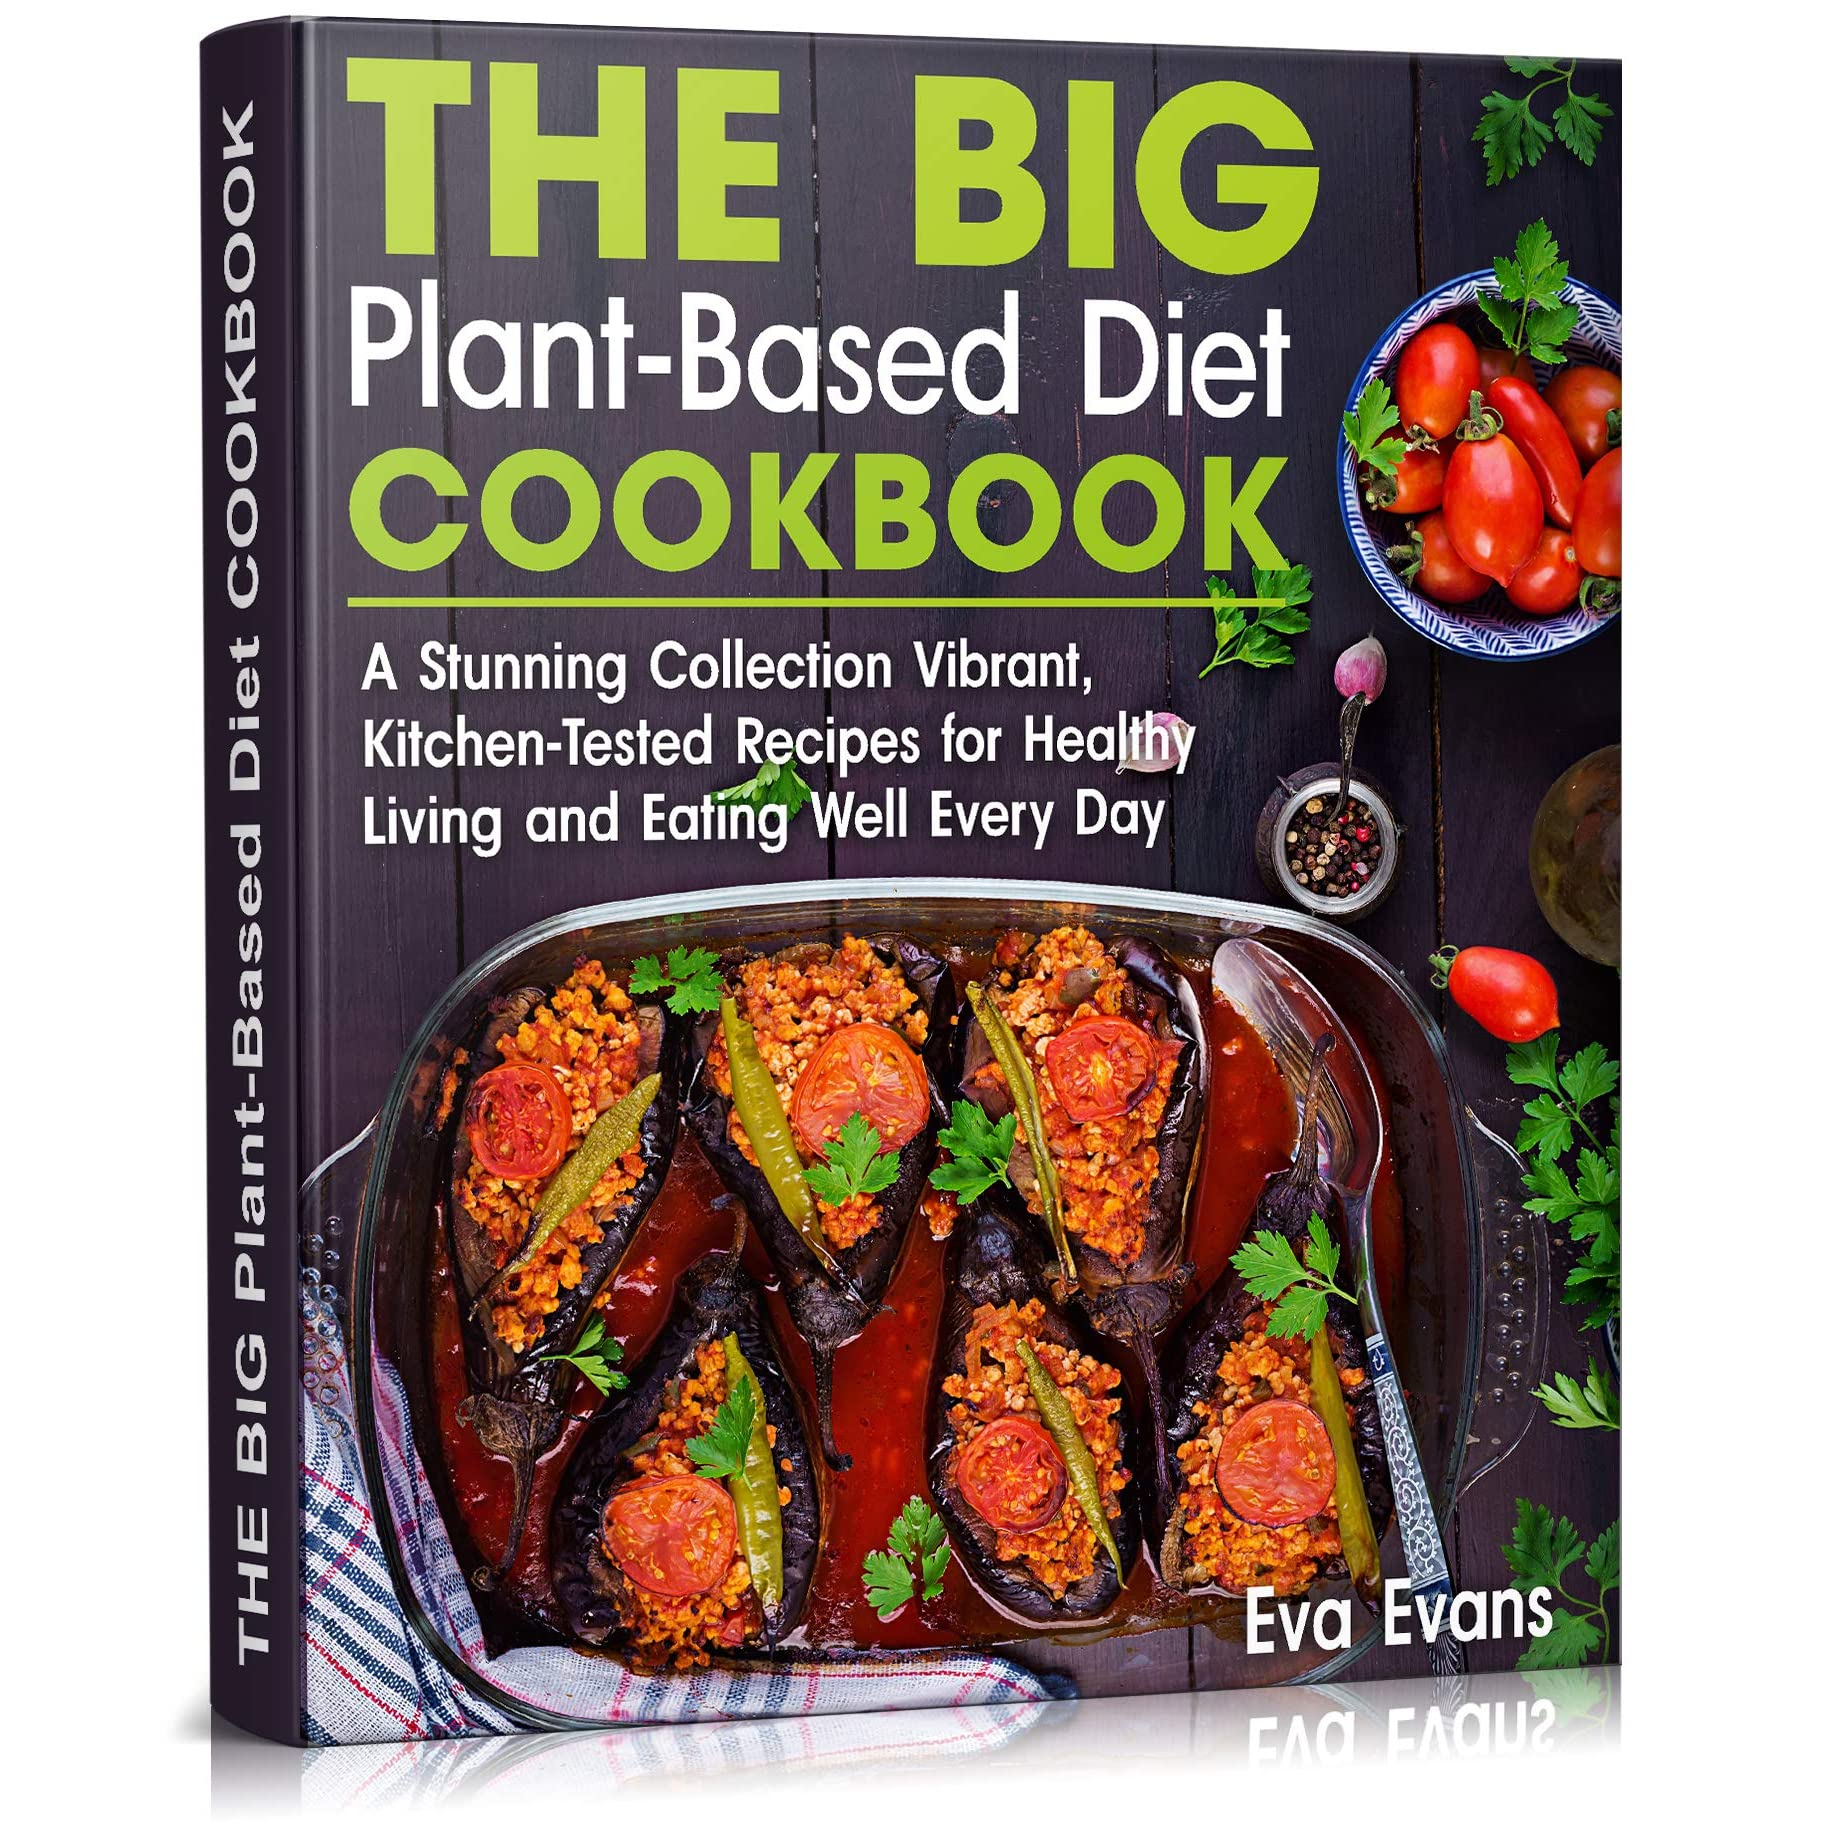 The Big Plant Based Diet Cookbook A Stunning Collection Vibrant Kitchen Tested Recipes For Healthy Living And Eating Well Every Day By Eva Evans